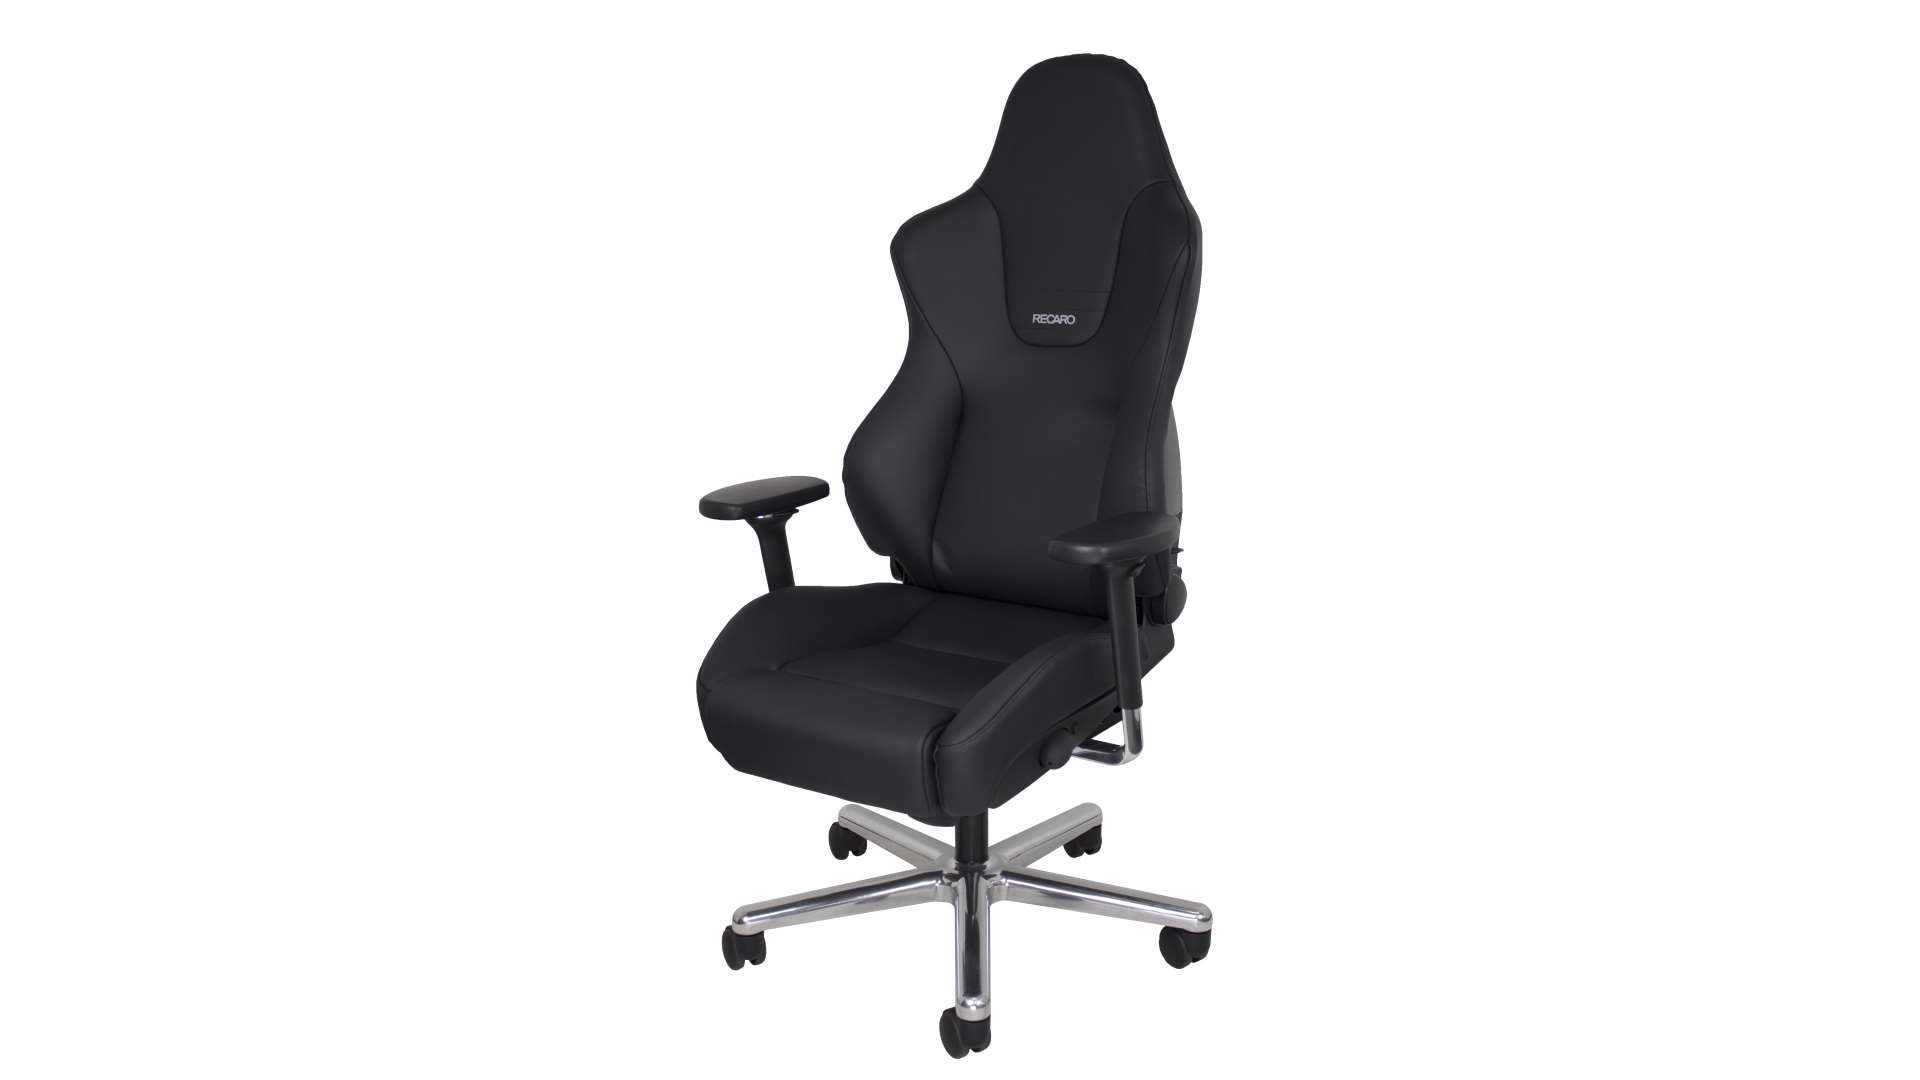 Recaro office chairs a black office chair with a white background